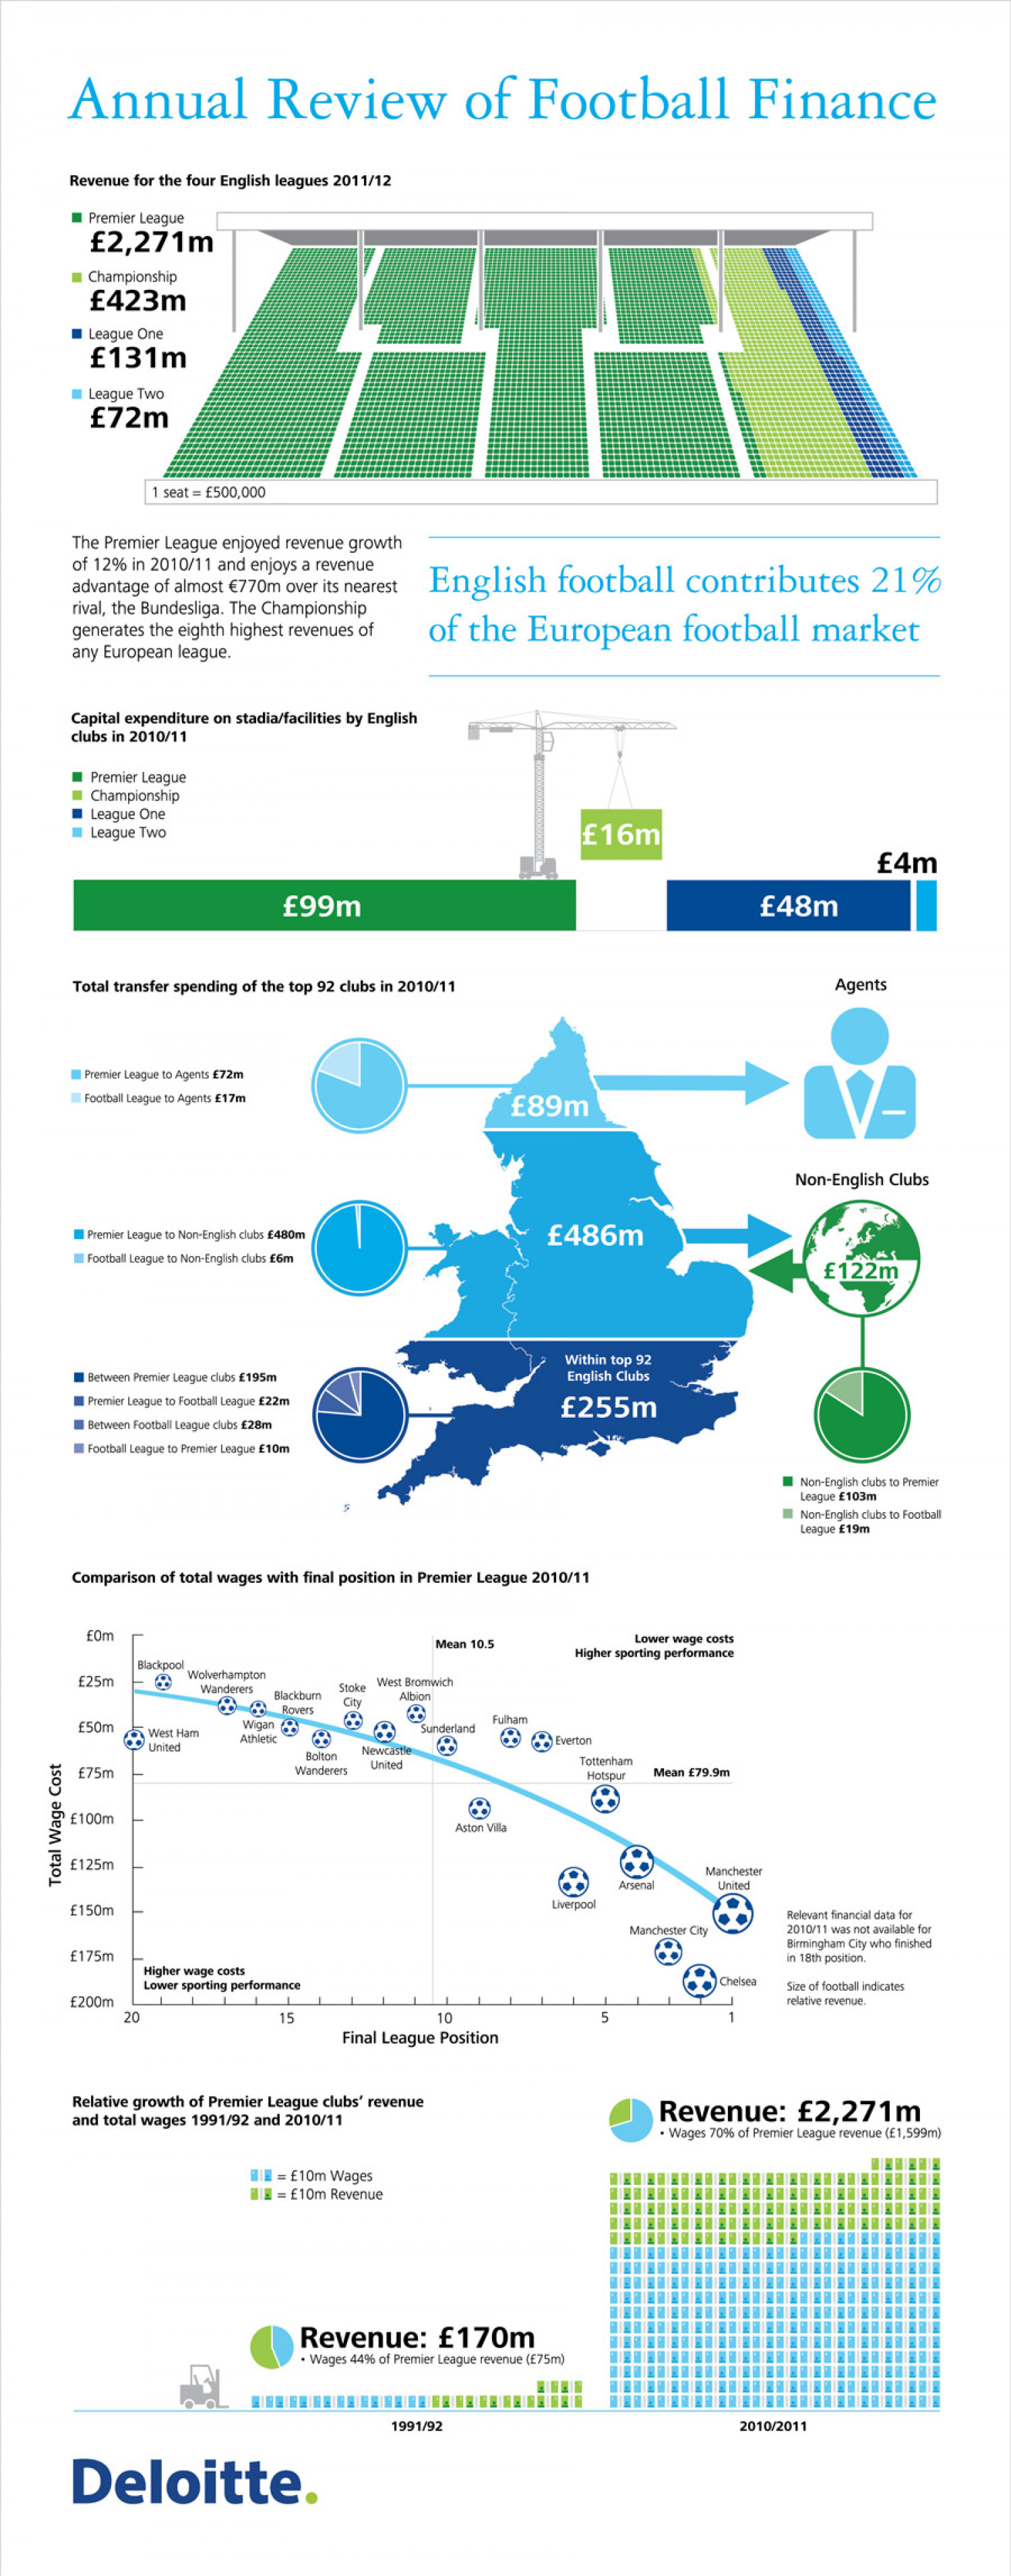 Annual Review of Football Finance Infographic